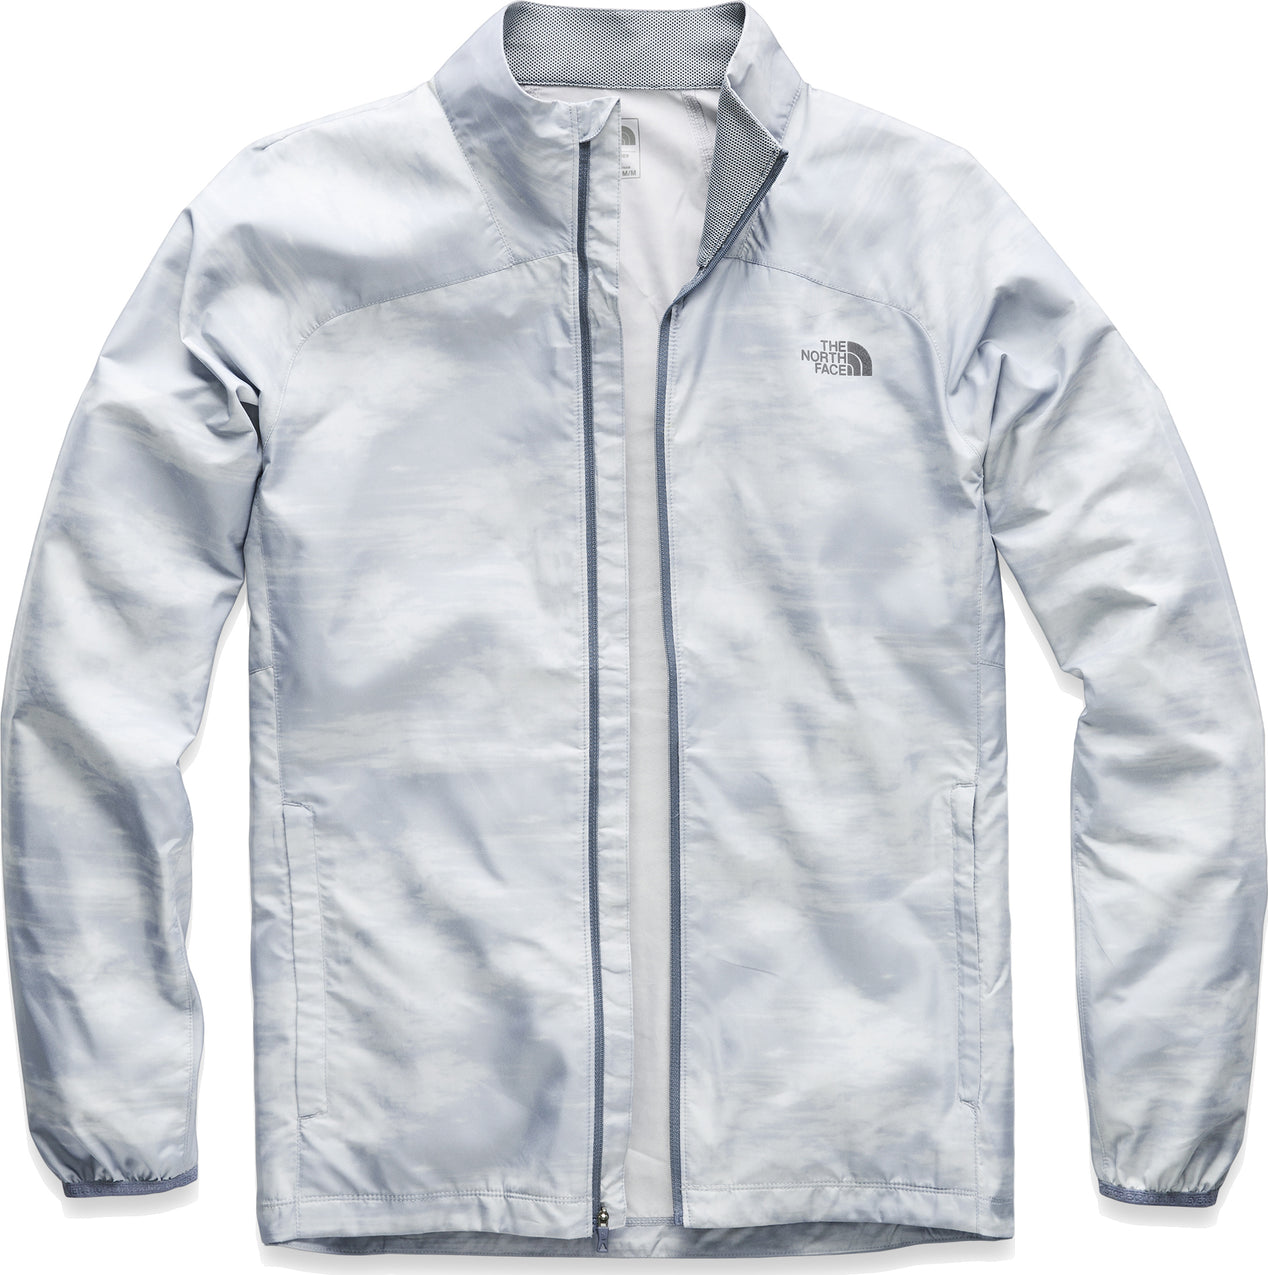 bb6efbcae The North Face Ambition Jacket - Men's